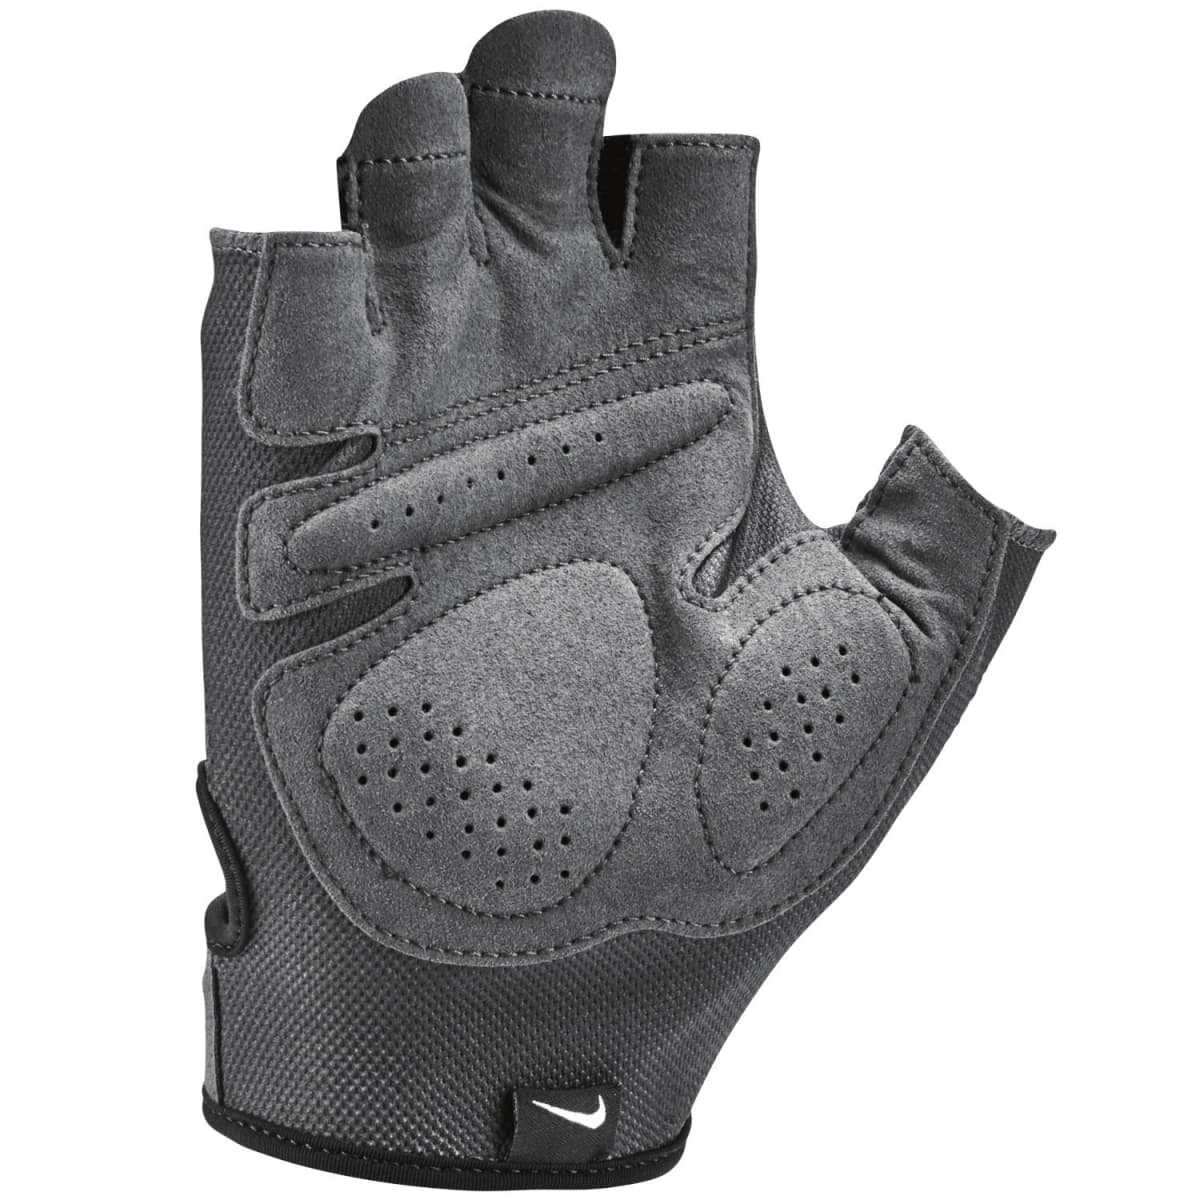 Fins, Footwear & Gloves Water Sports Ocean Hunter Strike Kevlar Gloves Bracing Up The Whole System And Strengthening It